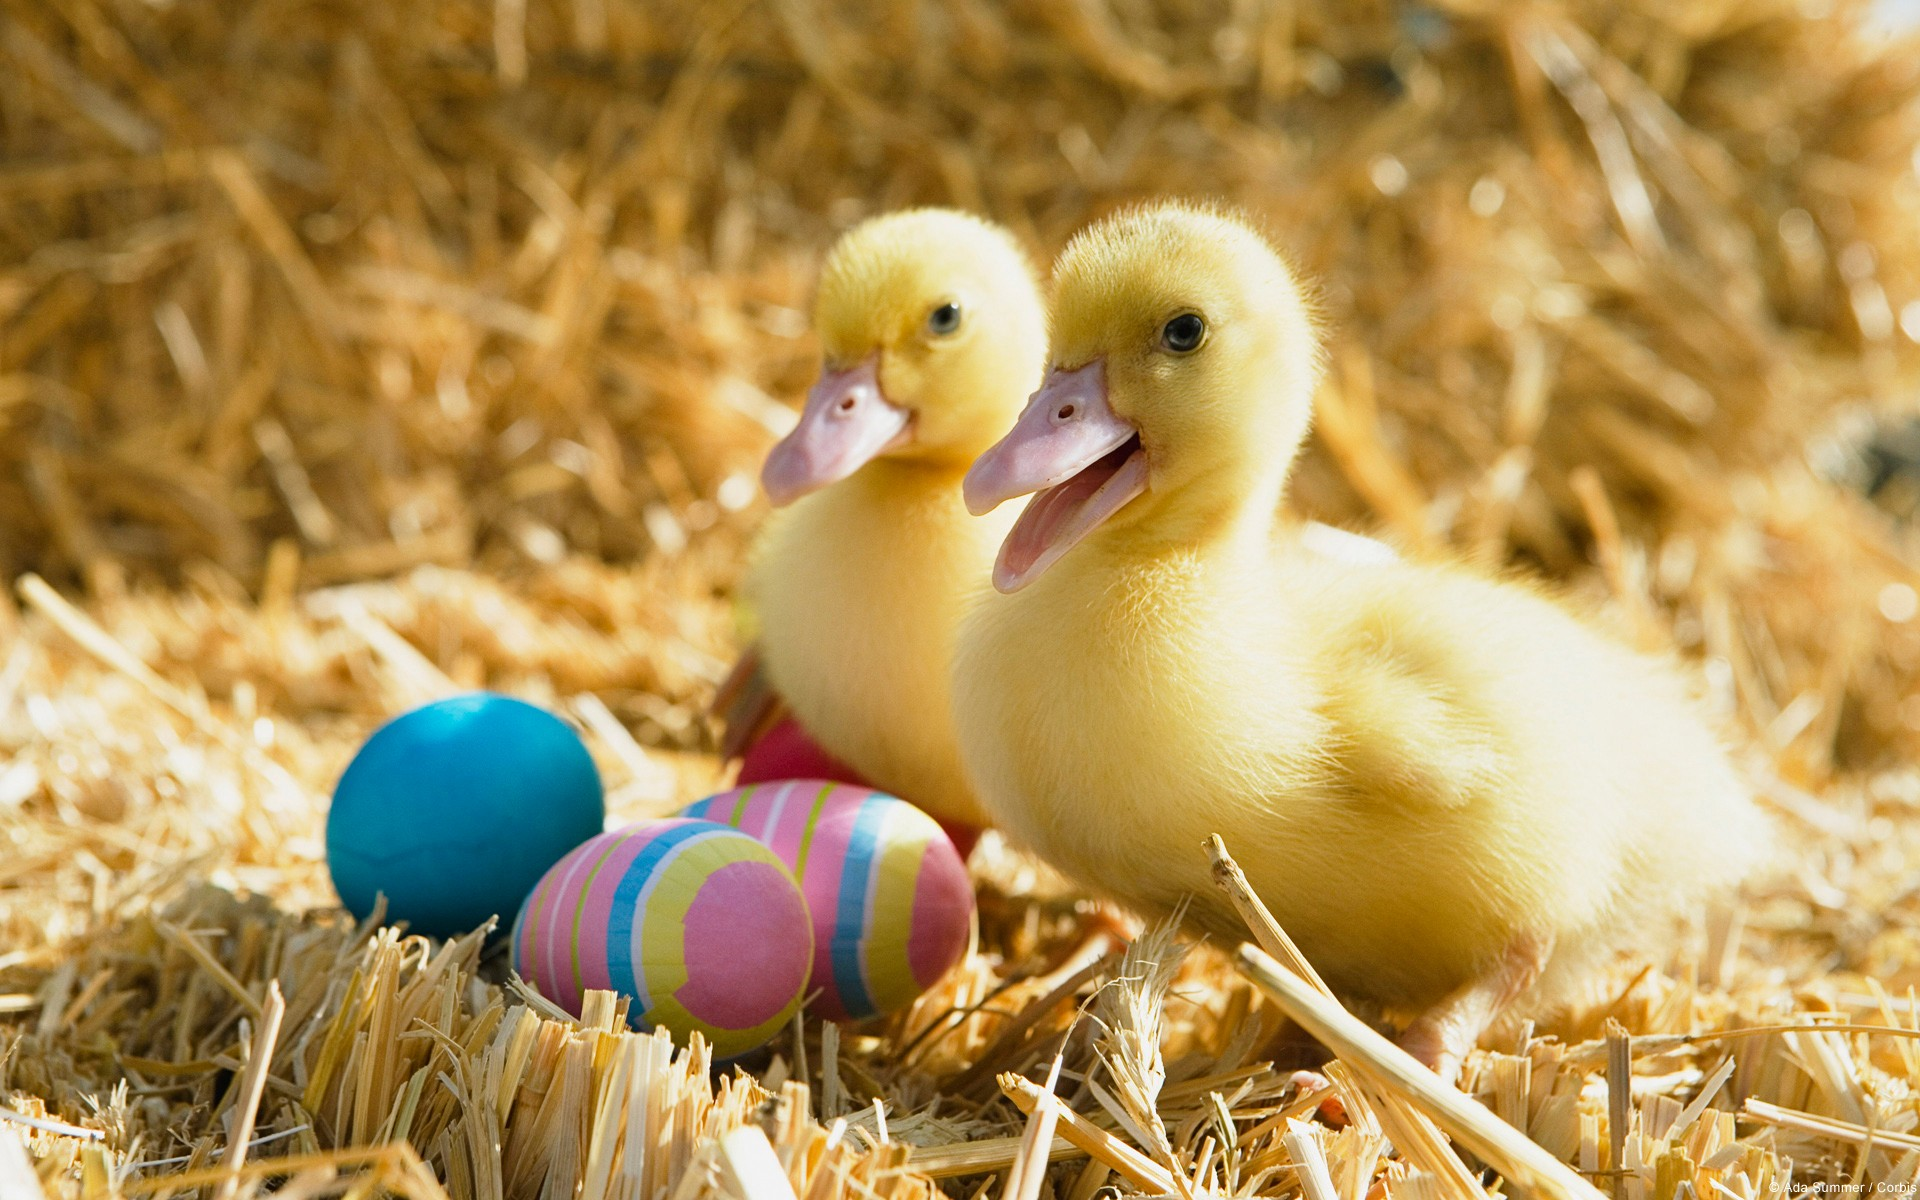 Ducklings And Easter Eggs Wallpapers Ducklings And